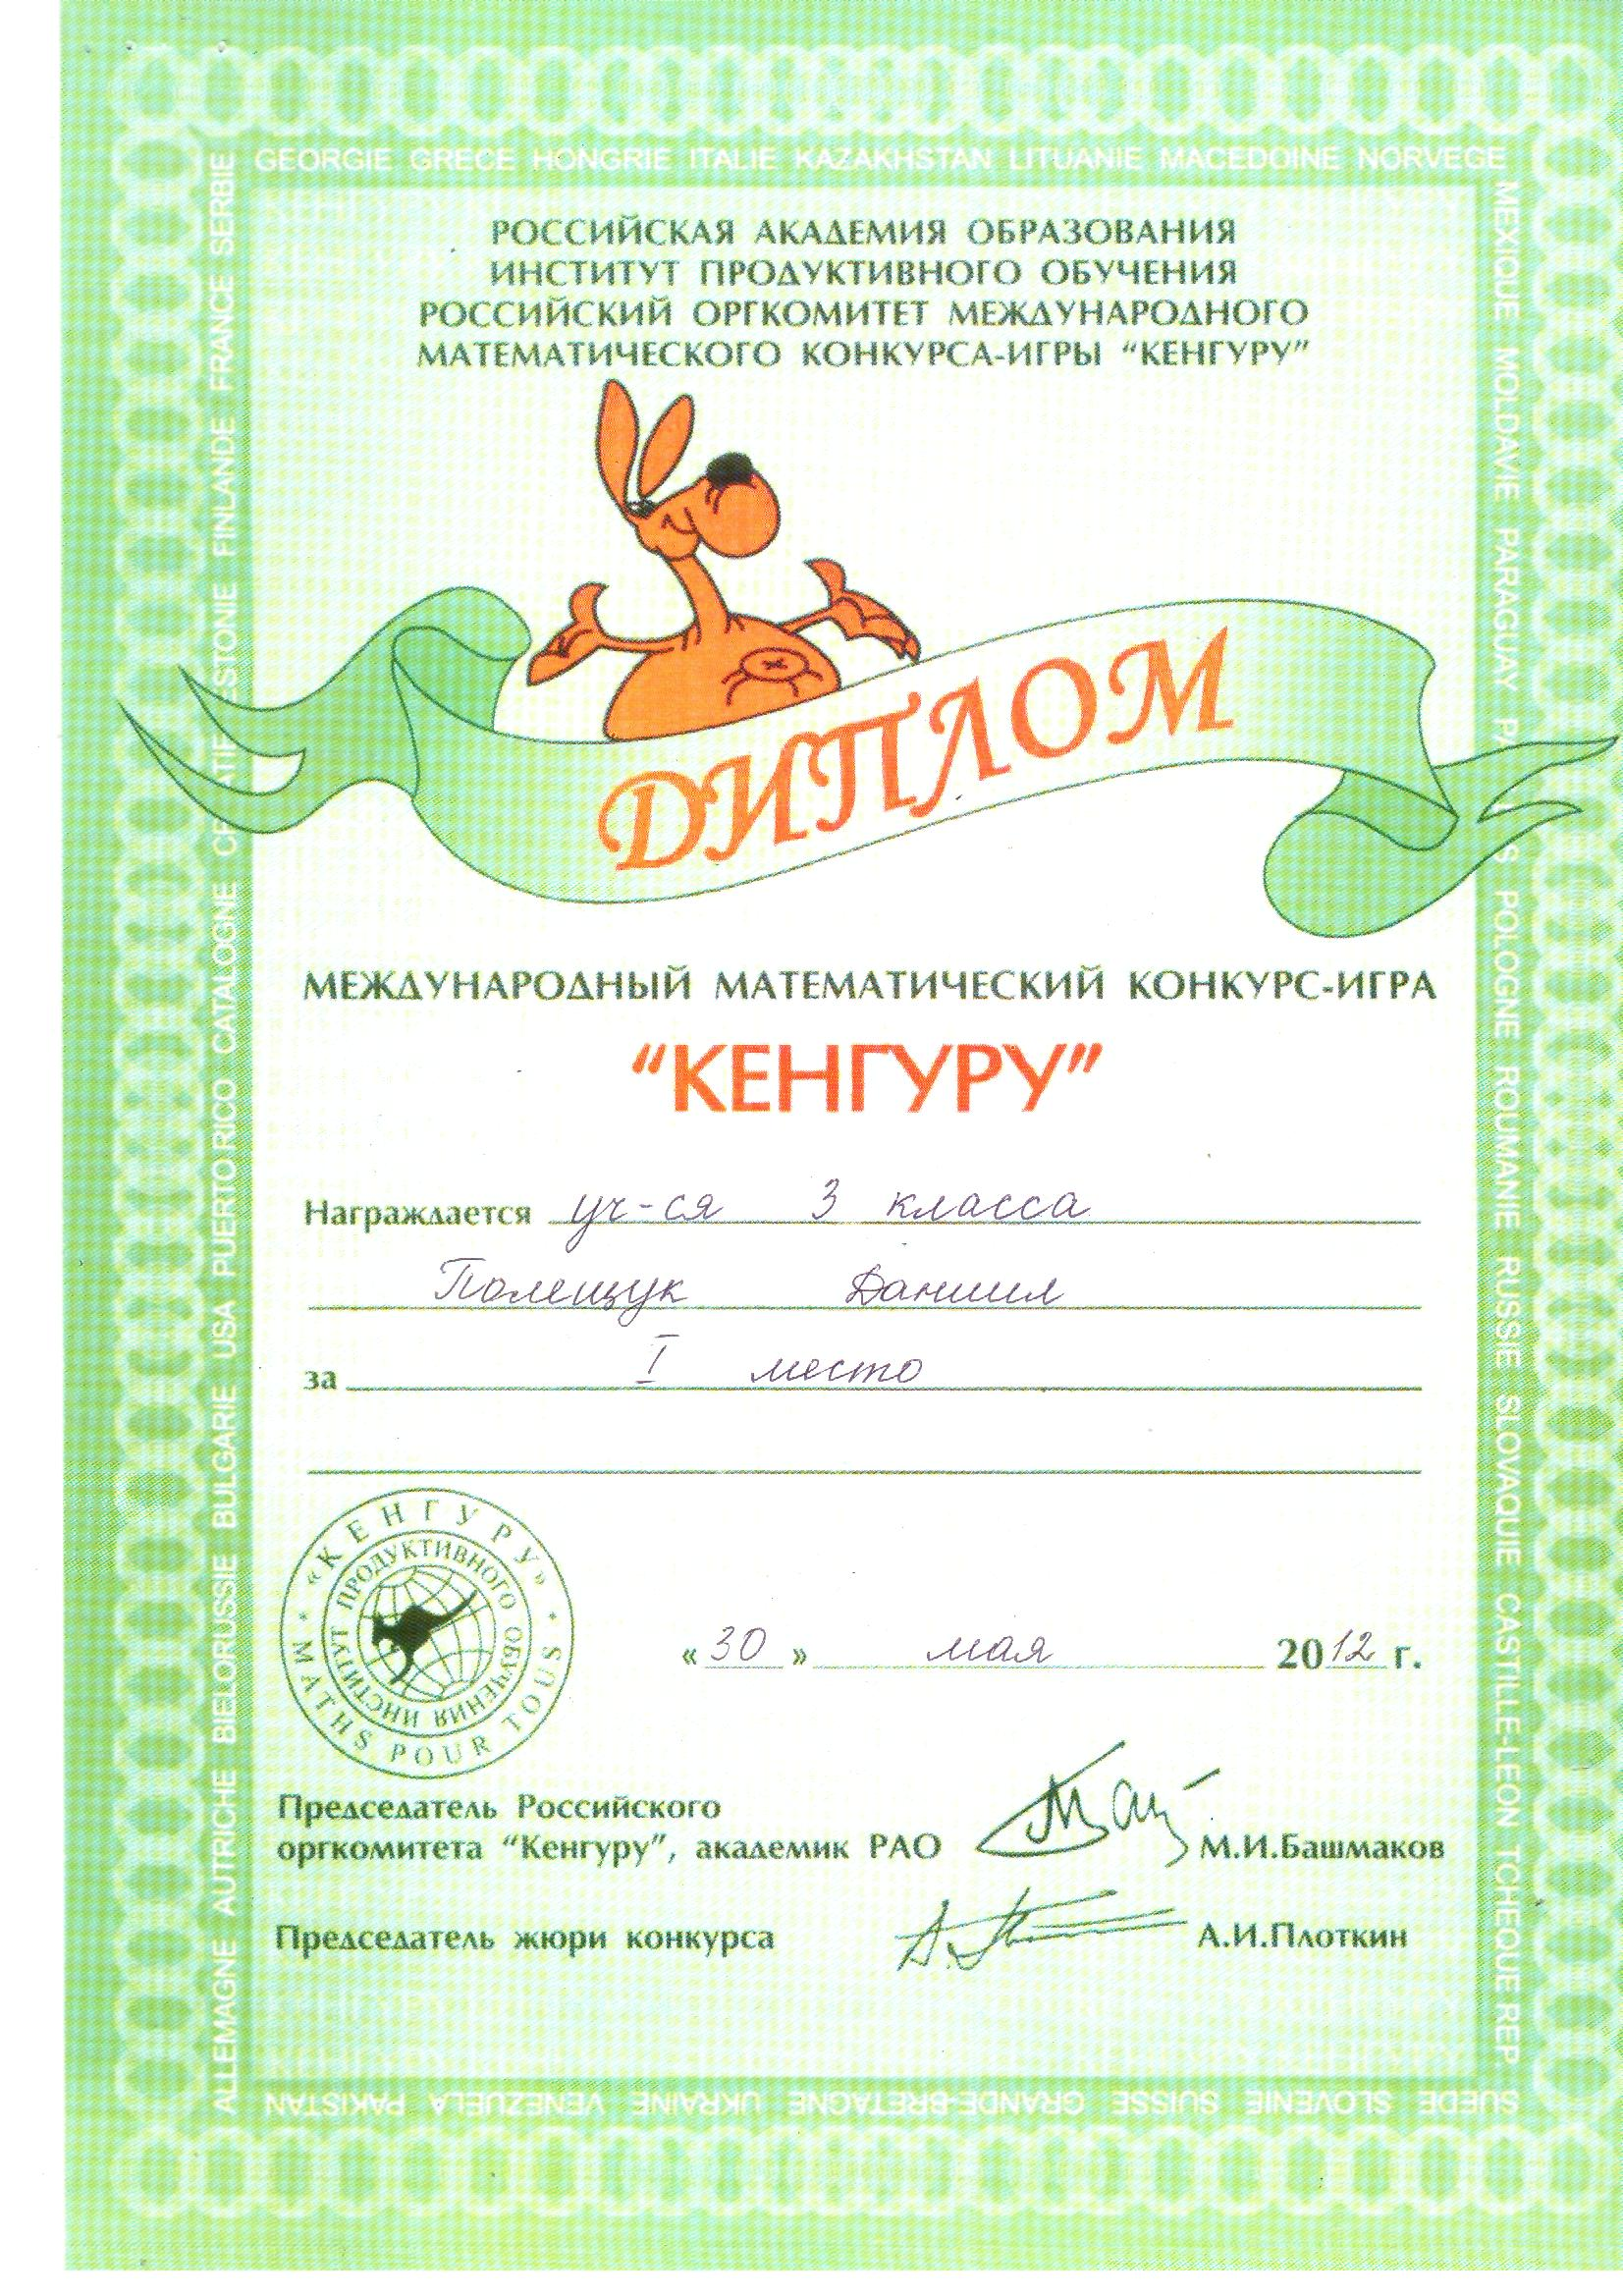 C:\Documents and Settings\User.USER-A1DBA845B9\Мои документы\Файлы Mail.Ru Агента\sergei_752@mail.ru\helios84@mail.ru\ков0009.jpg